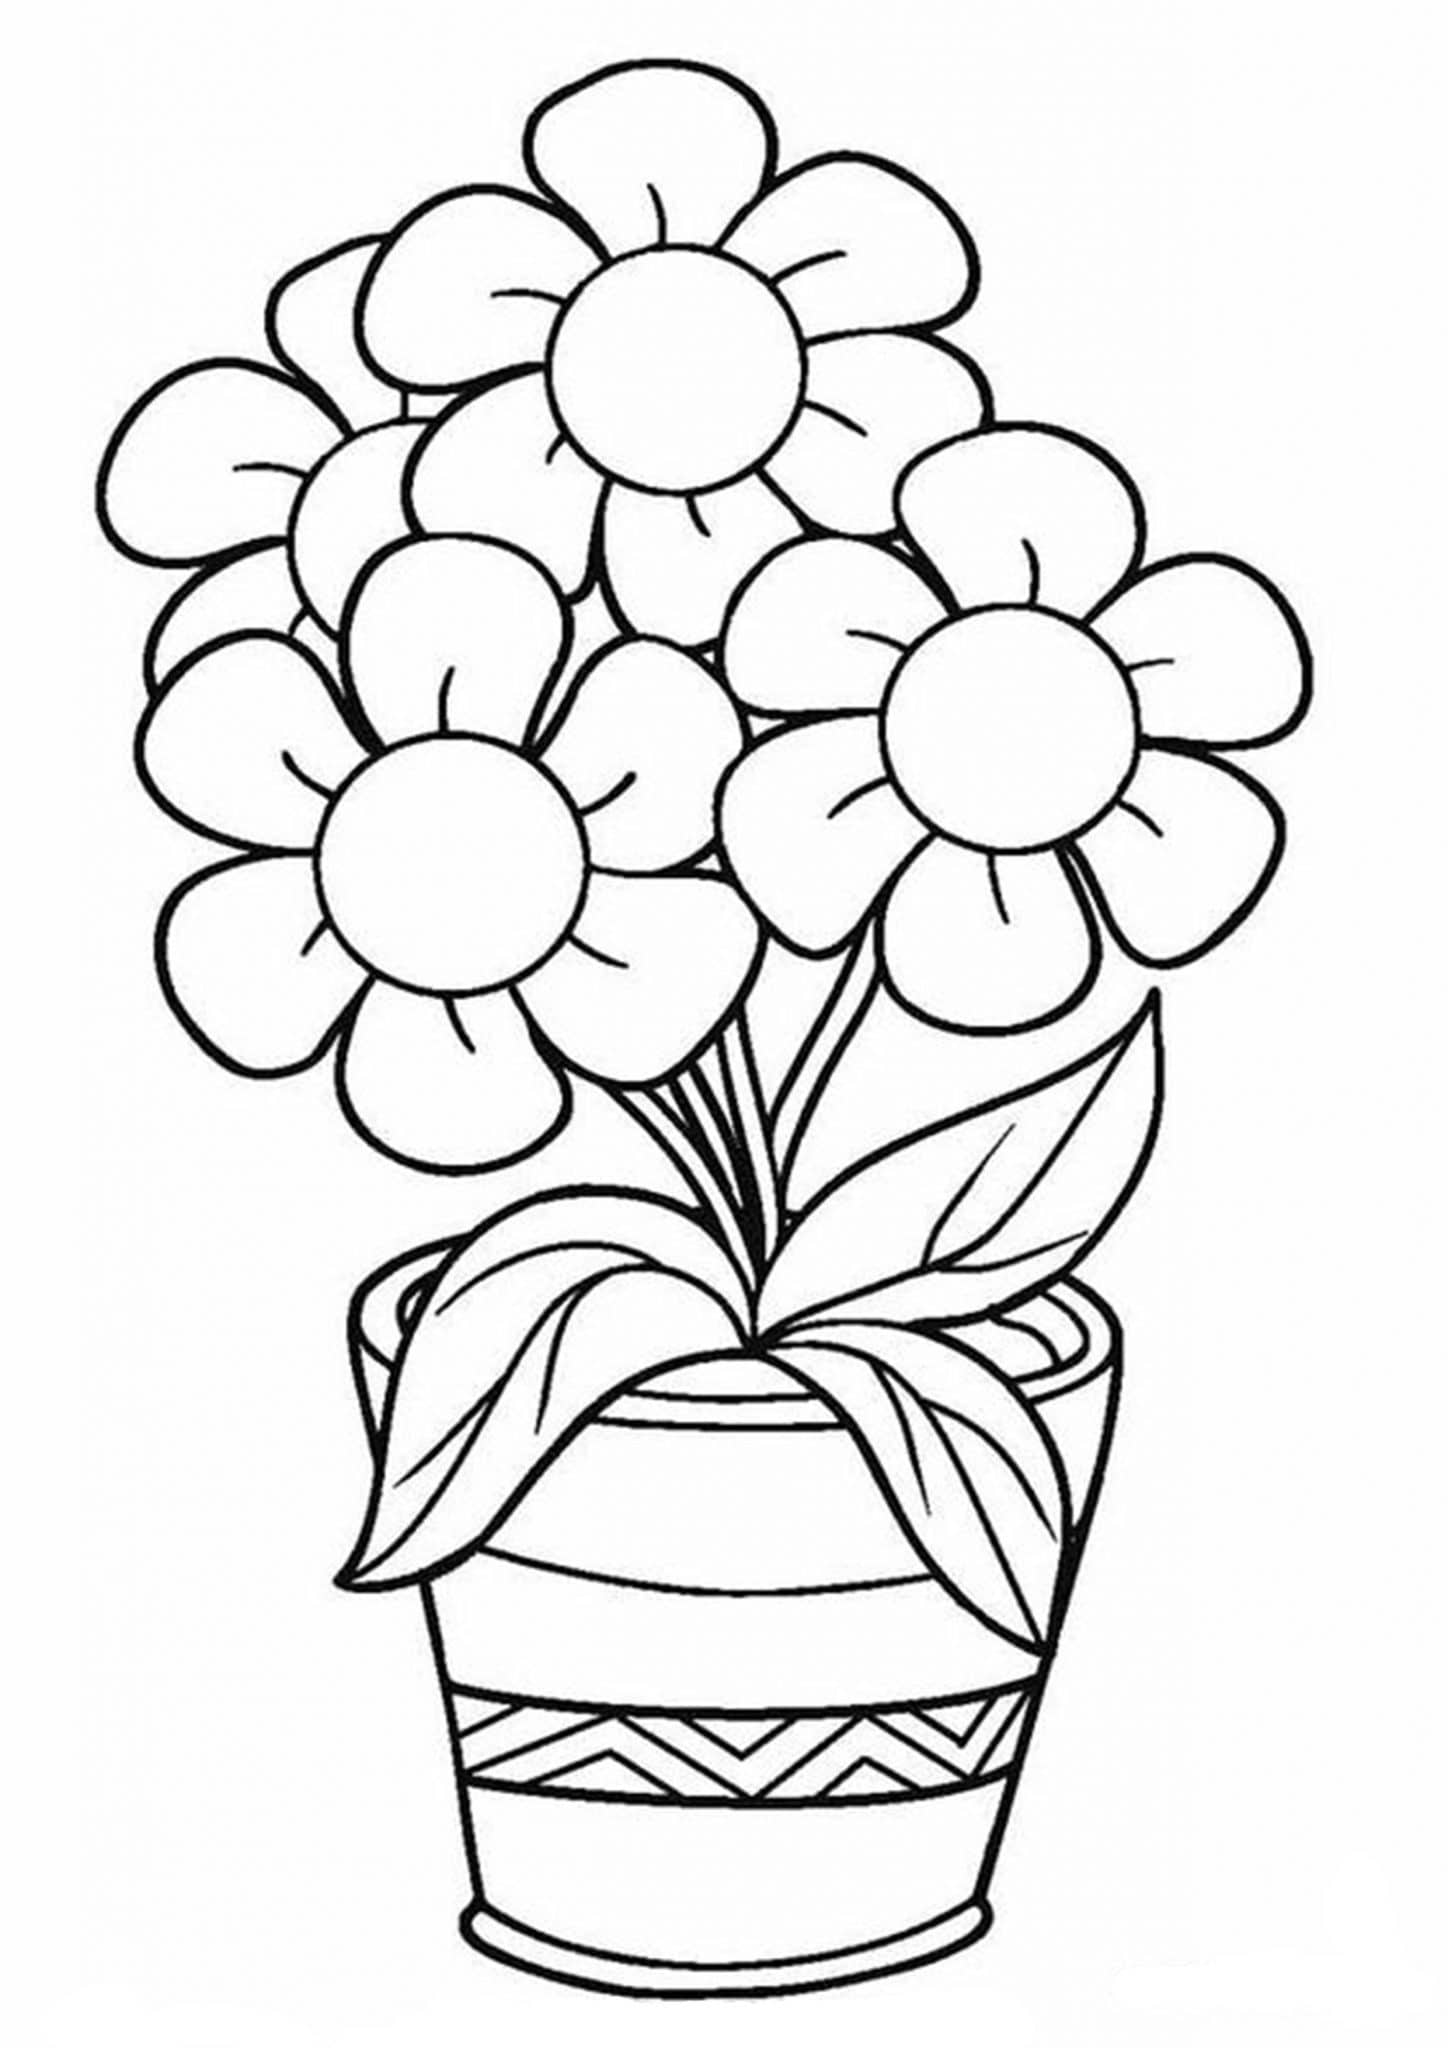 picture of flowers to print single flower coloring pages at getcoloringscom free of flowers print to picture